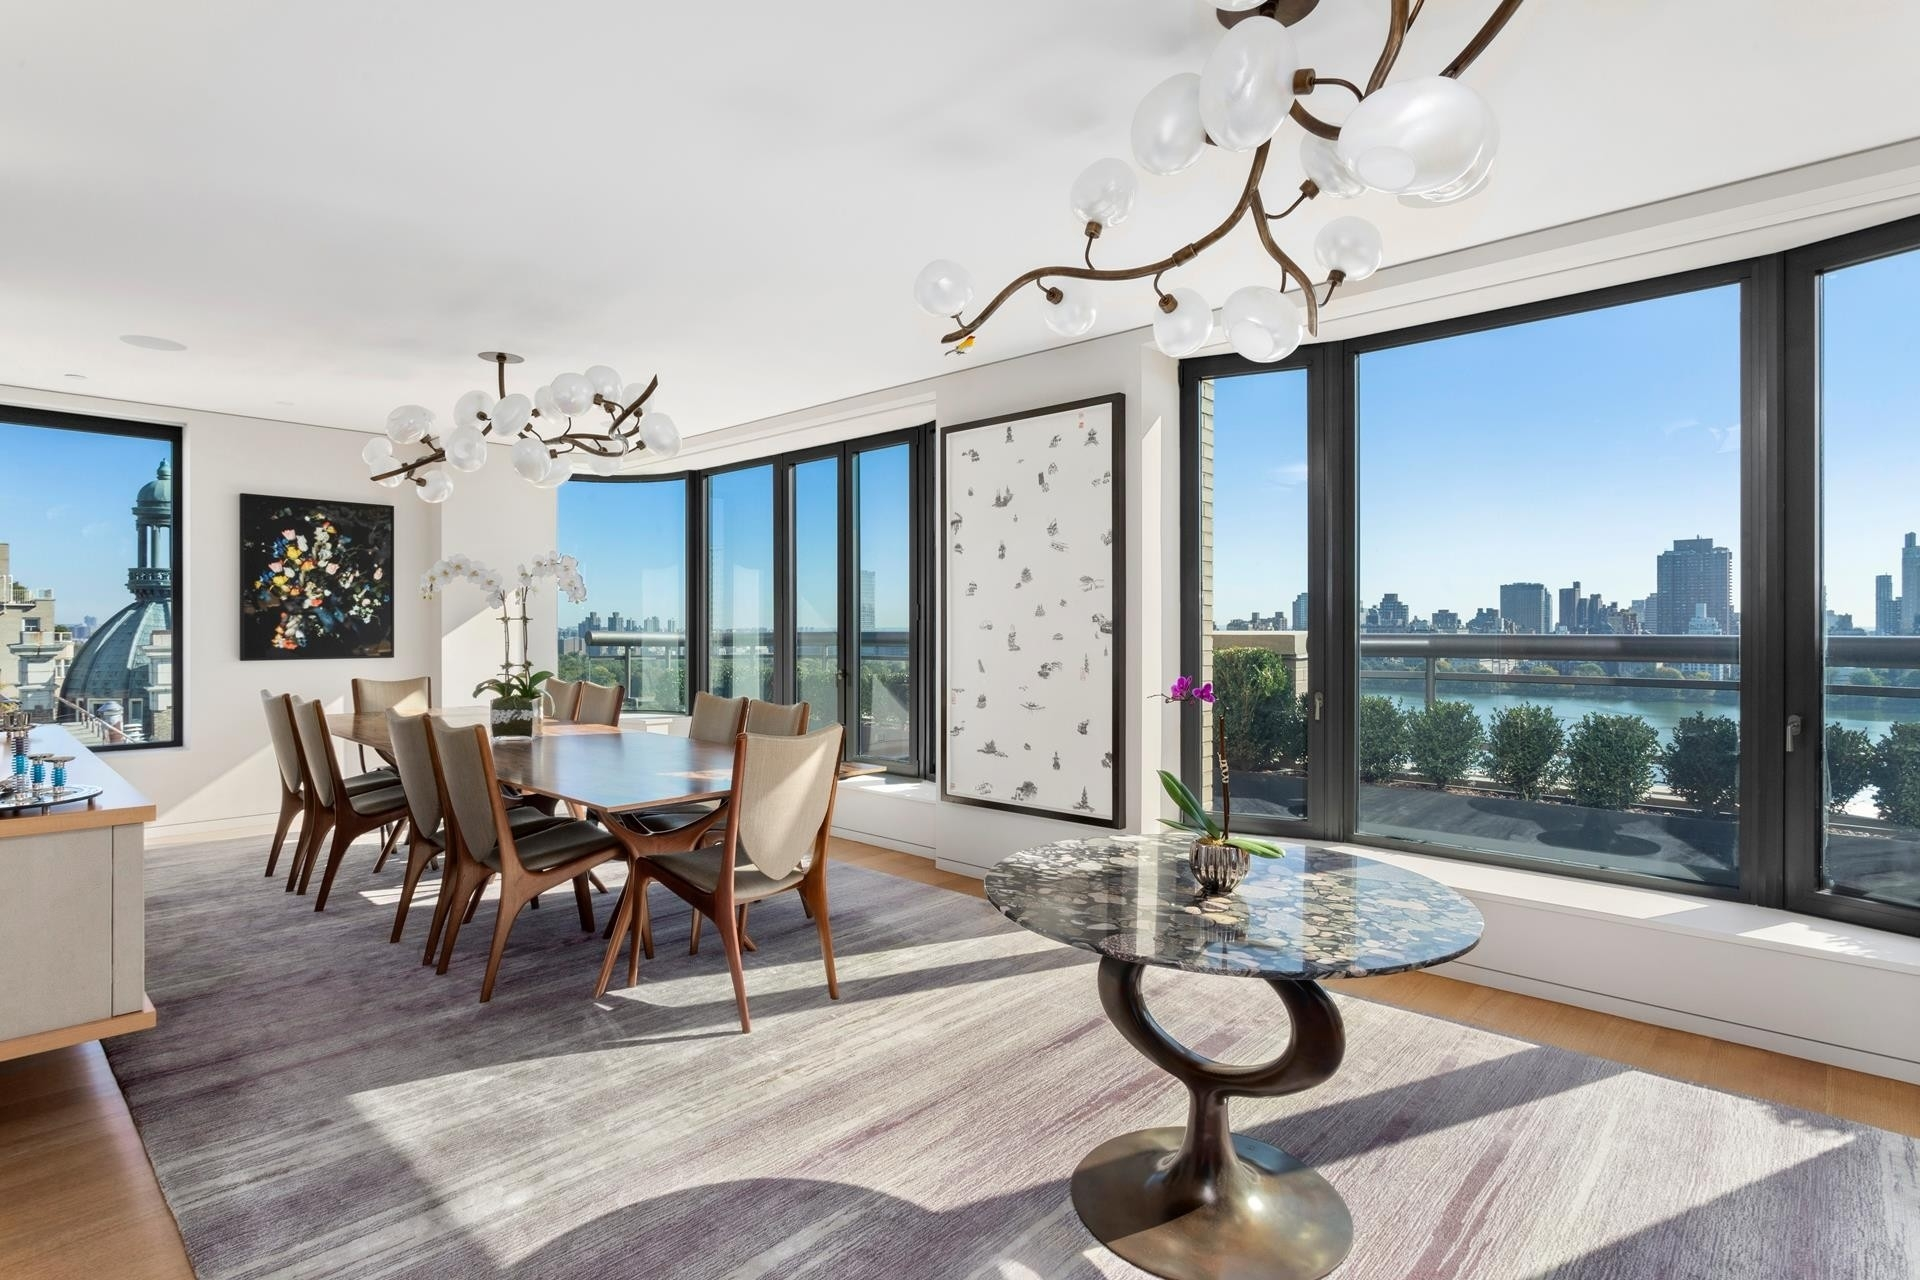 2. Condominiums for Sale at 279 CPW, 279 Central Park West, PHBA Upper West Side, New York, NY 10024